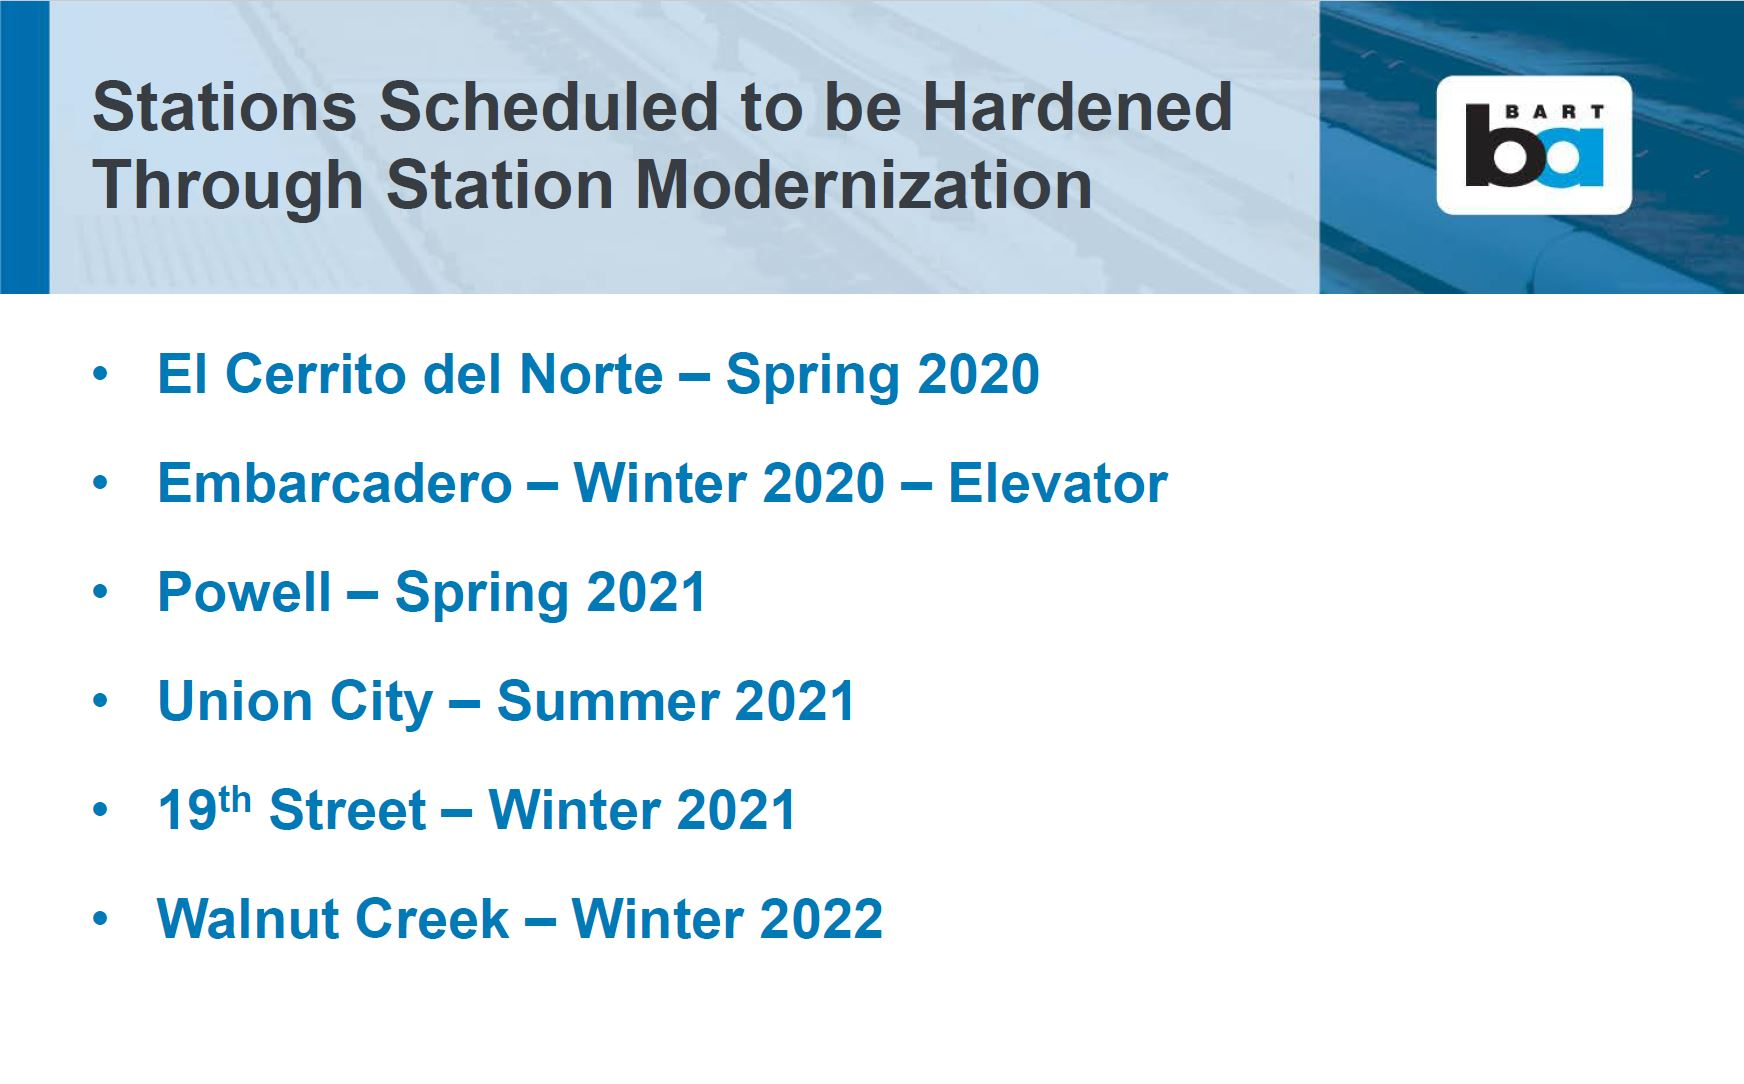 Stations being hardened through modernization